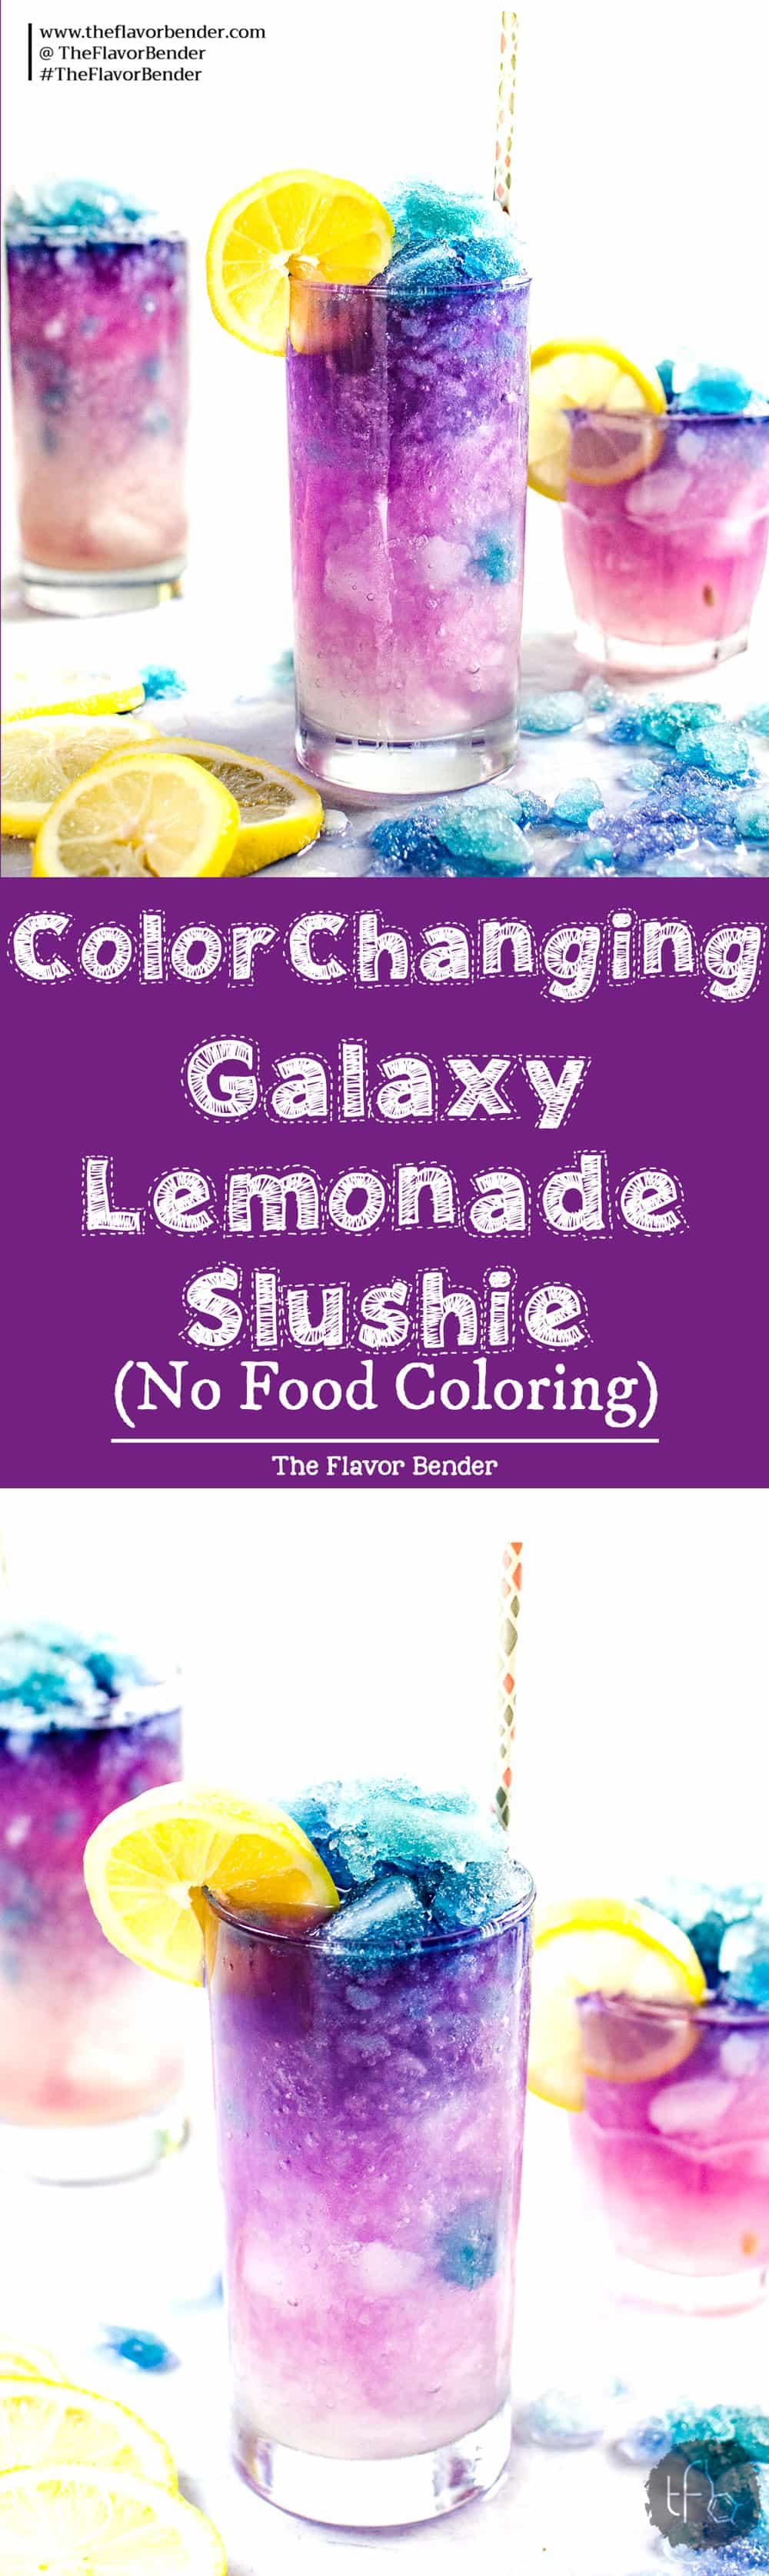 Color Changing Galaxy Lemonade Slushie - There's no food coloring in this Color Changing Lemonade Slushie! Just a dash of magic from magic ice and delicious lemonade that kids and adults will love. The ultimate Summer Lemonade drink! #Butterflypea #GalaxyLemonade #ButterflypeaLemonade #ColorChangingDrinks